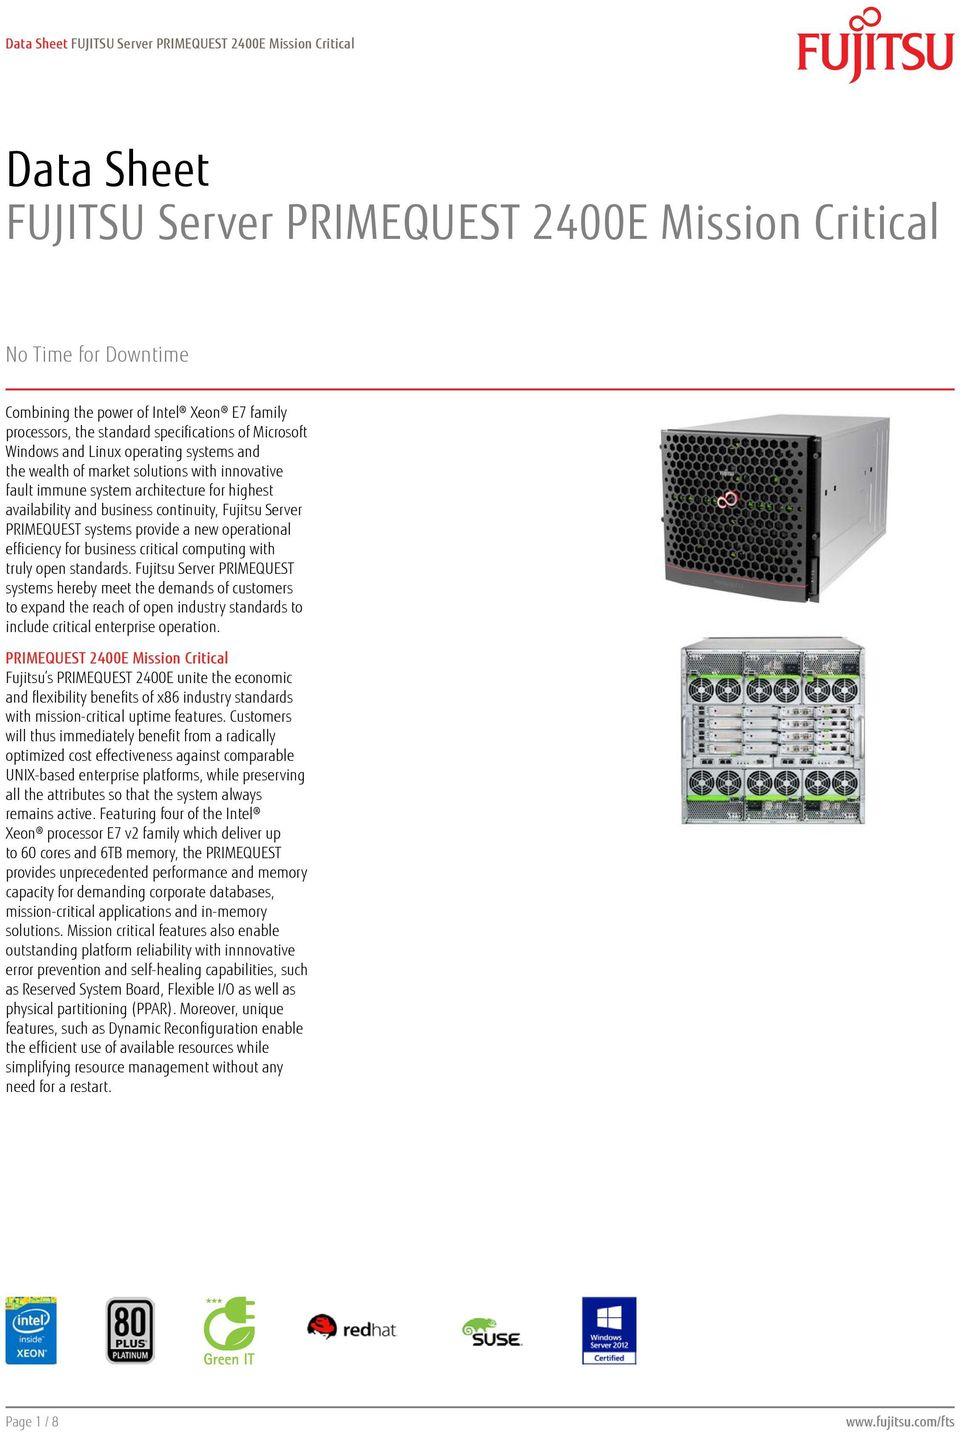 continuity, Fujitsu Server PRIMEQUEST systems provide a new operational efficiency for business critical computing with truly open standards.